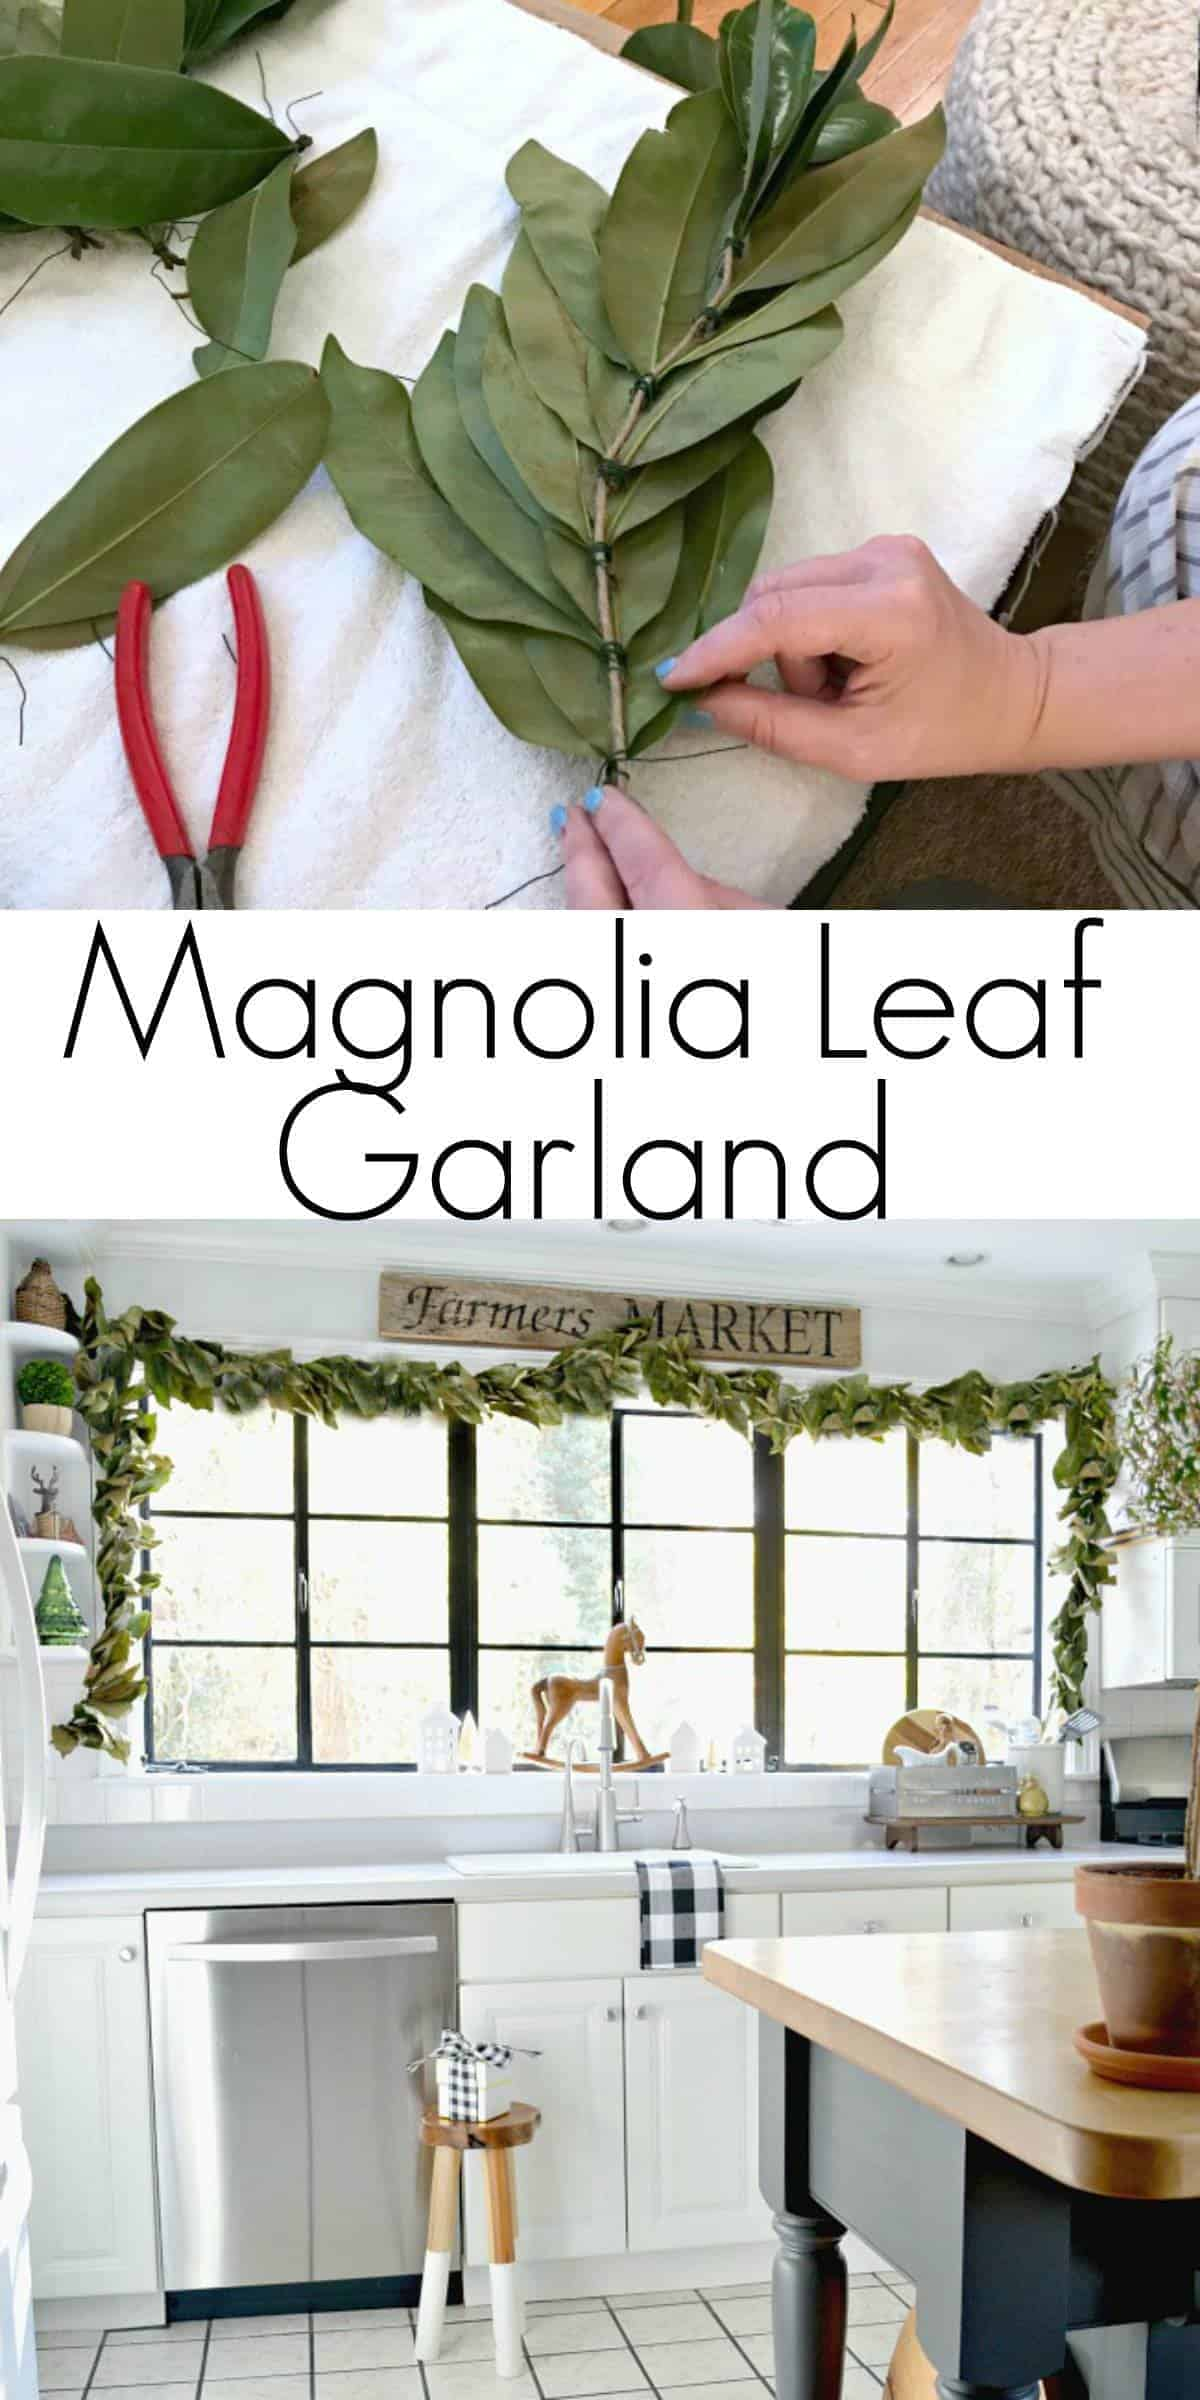 making magnolia leaf garland and magnolia leaf garland around kitchen window